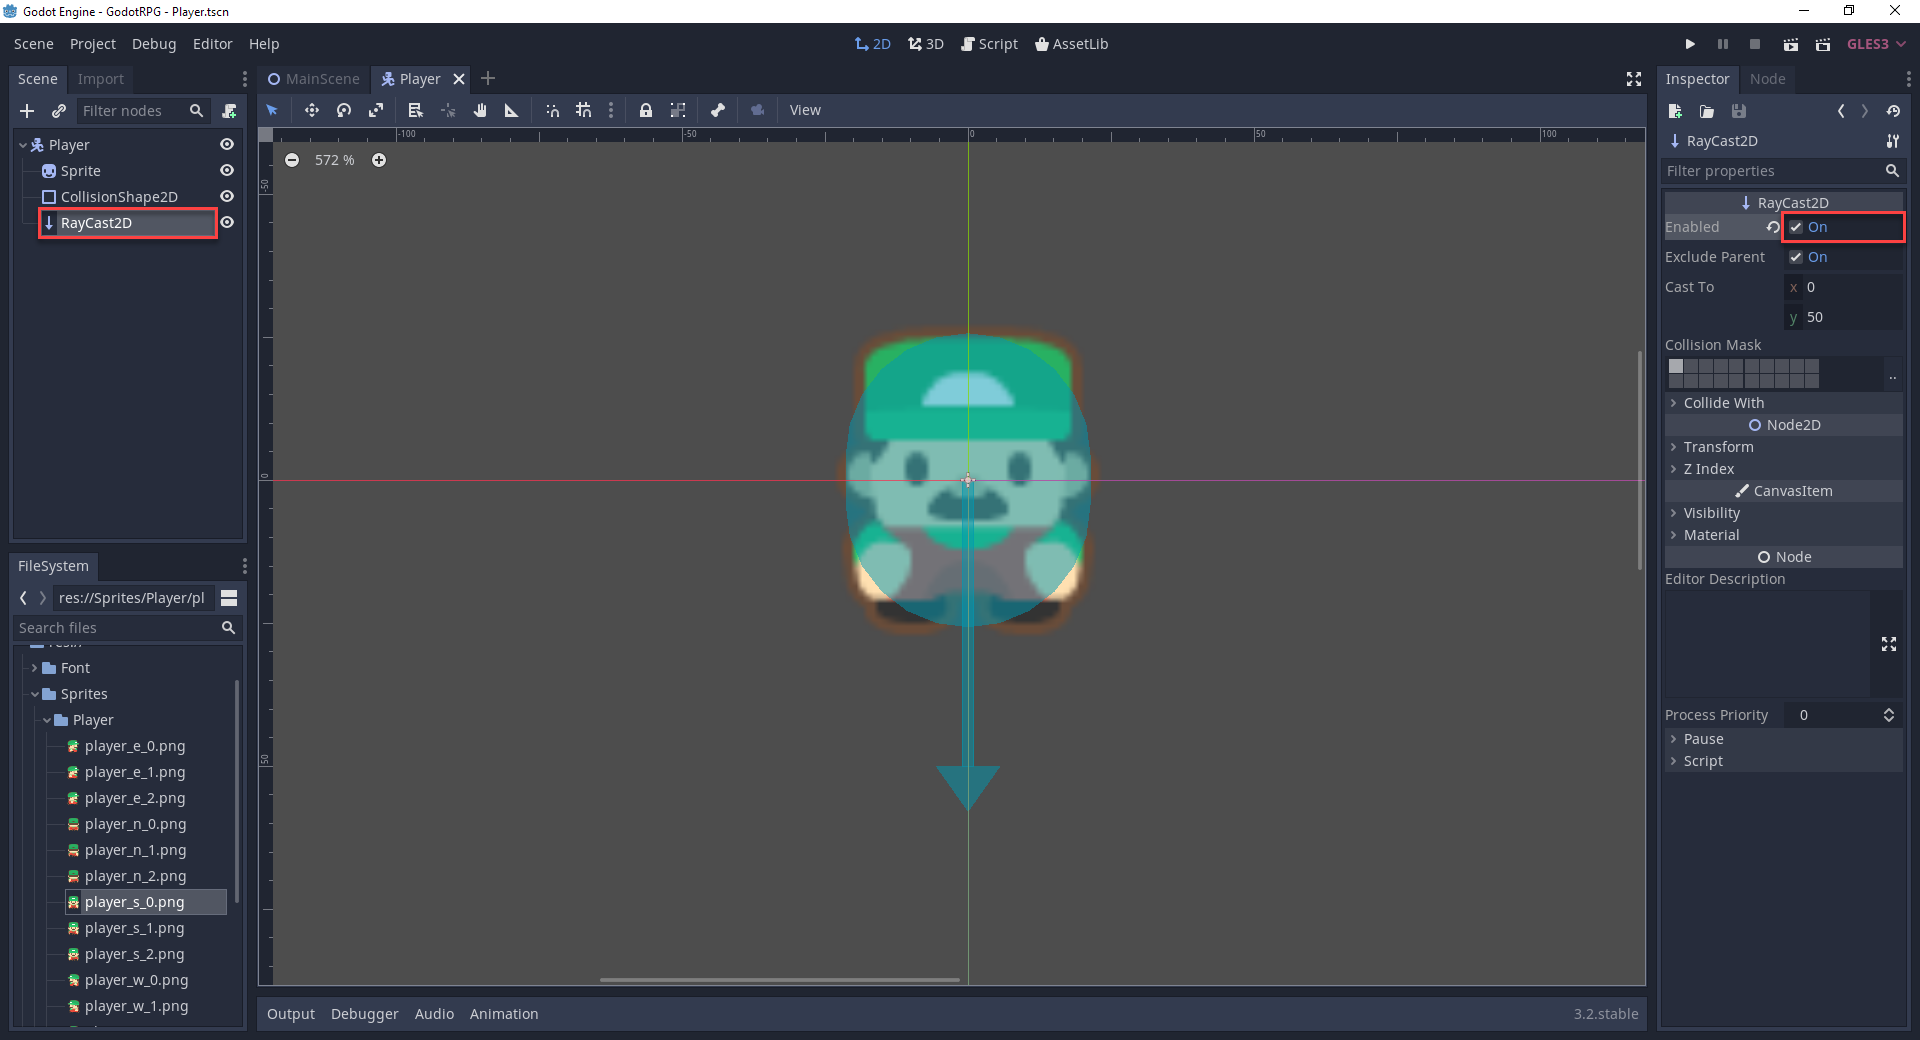 2D character sprite in Godot with RayCast2D